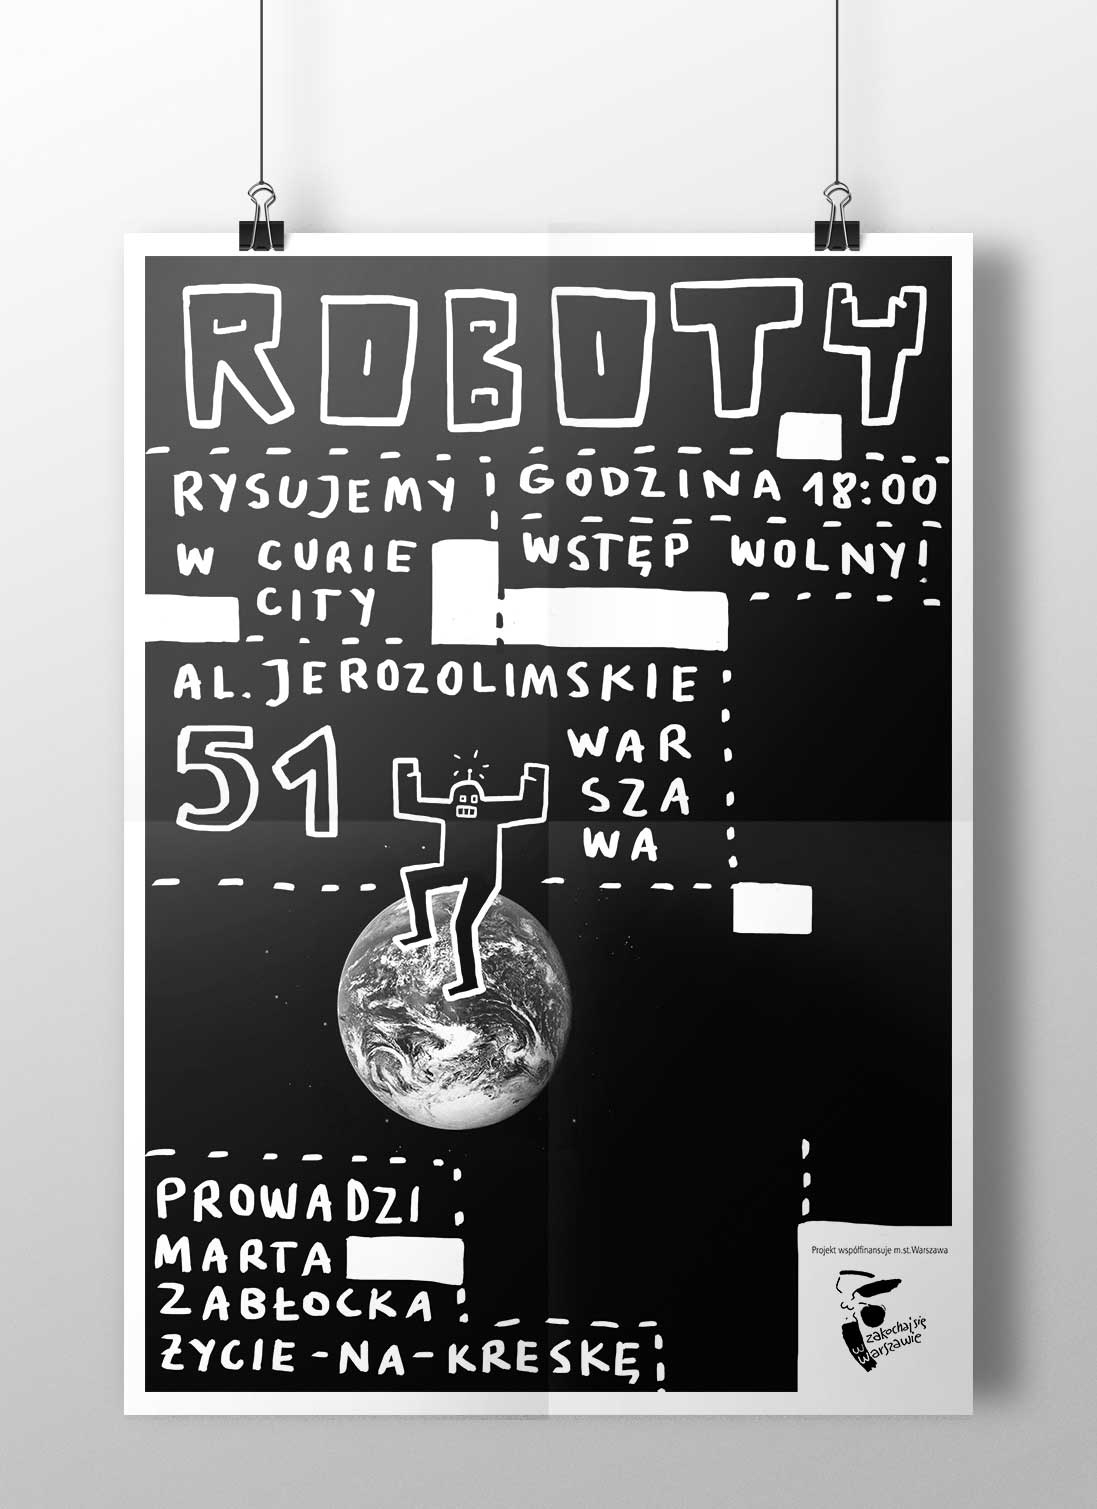 Curie City - Roboty